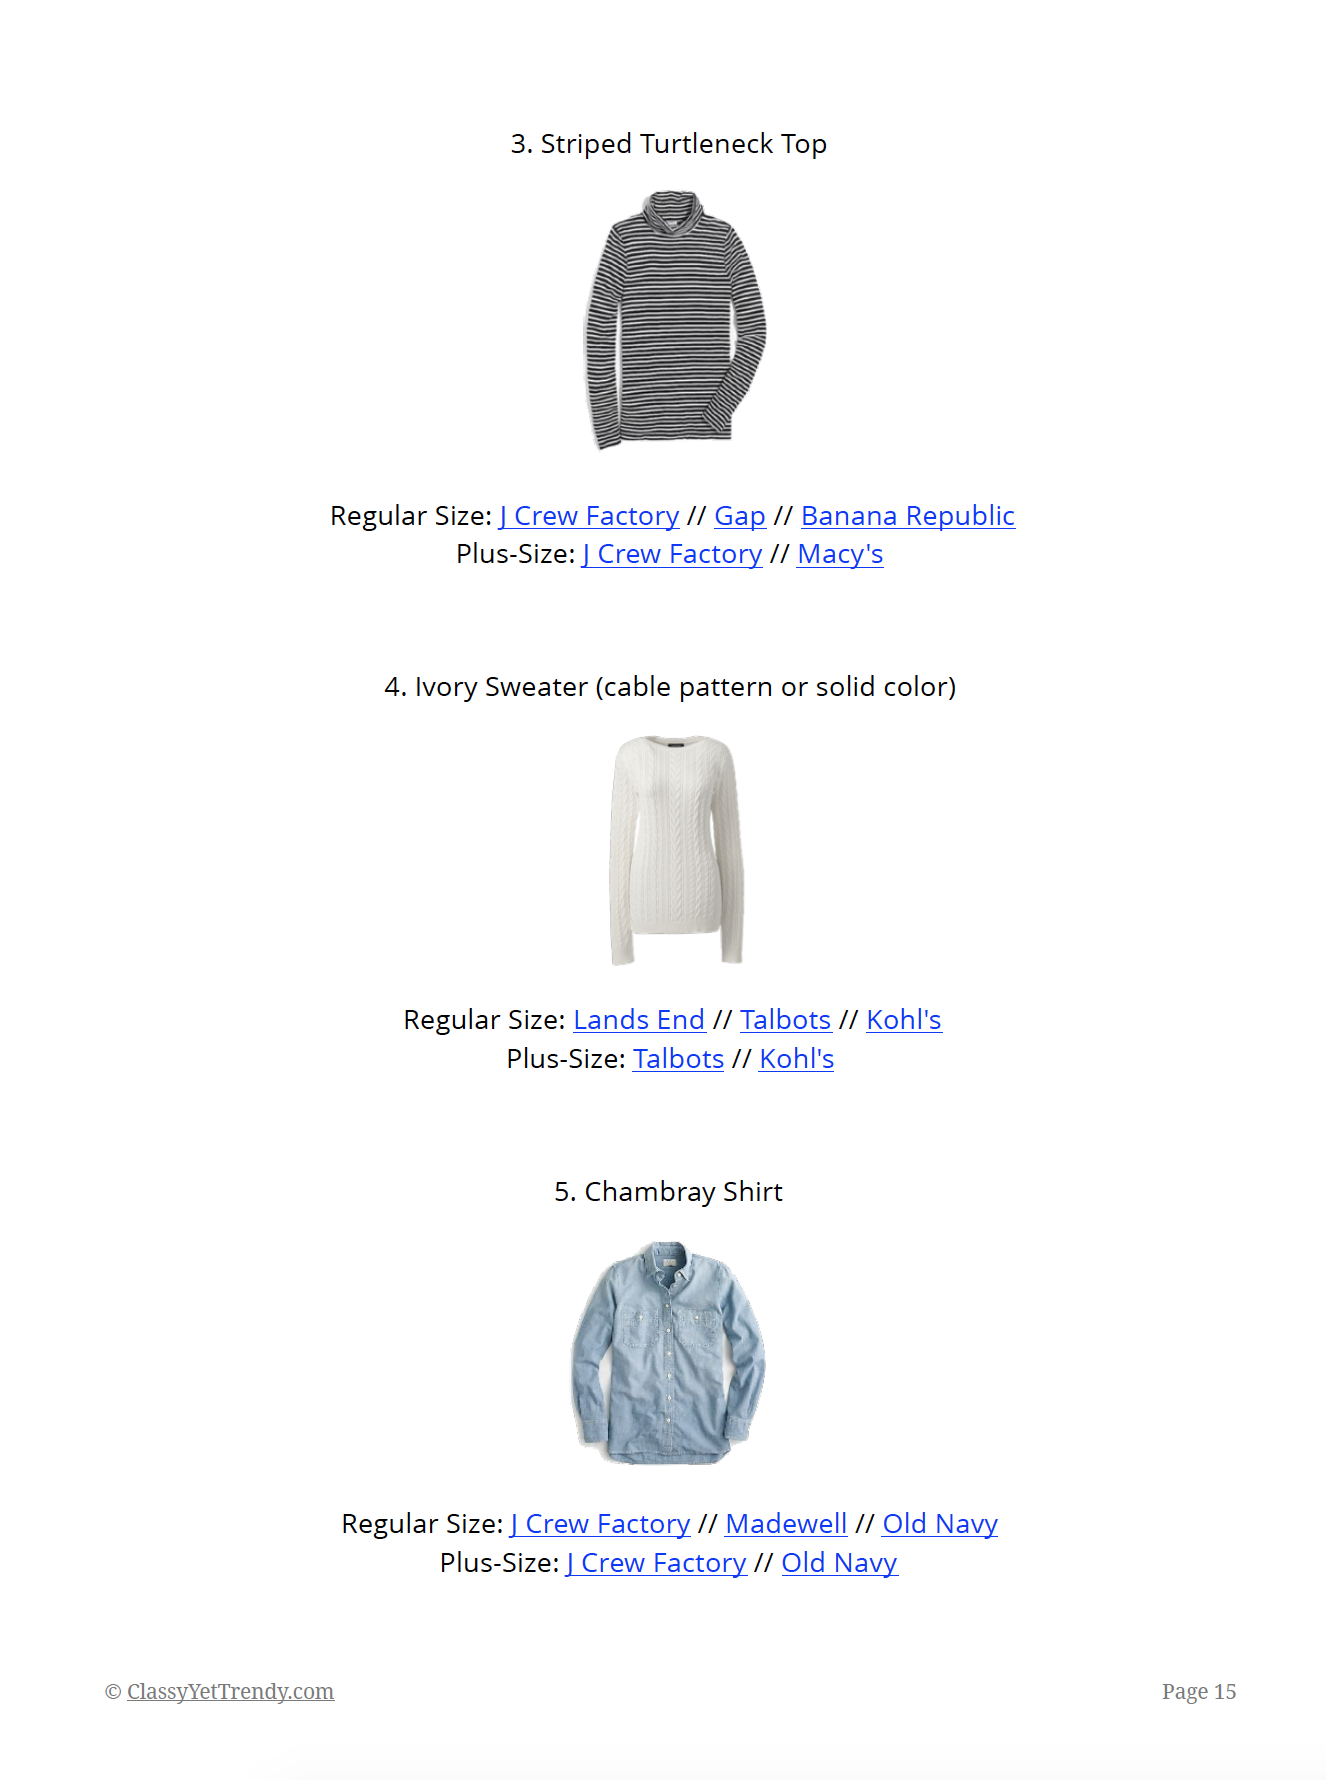 Essential Capsule Wardrobe Winter 2018-2019 - page 15